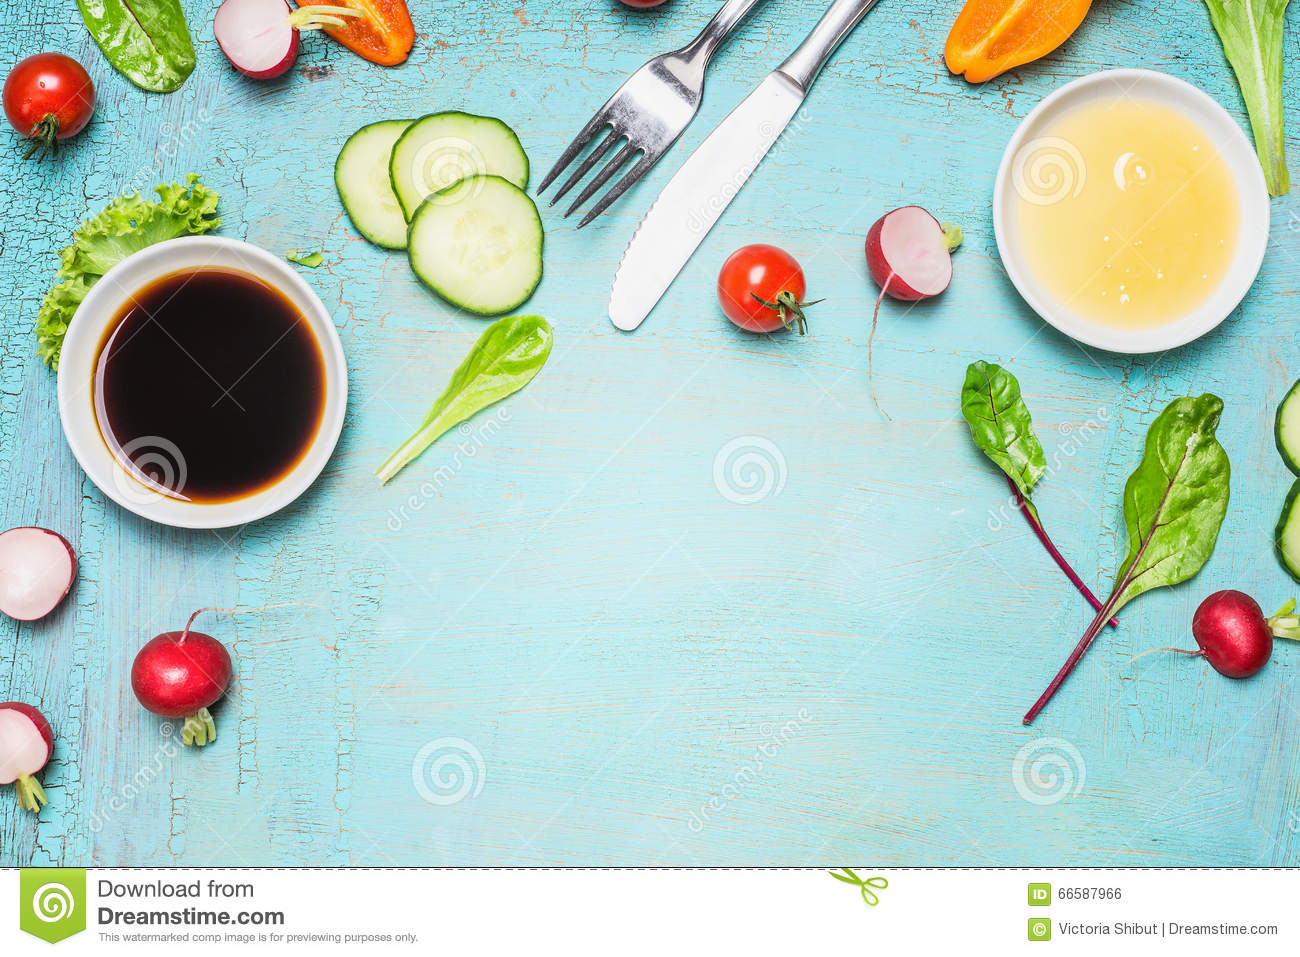 Salad preparation with cutlery dressing ingredients , lettuce , herbs and vegetables on light blue wooden background, top view